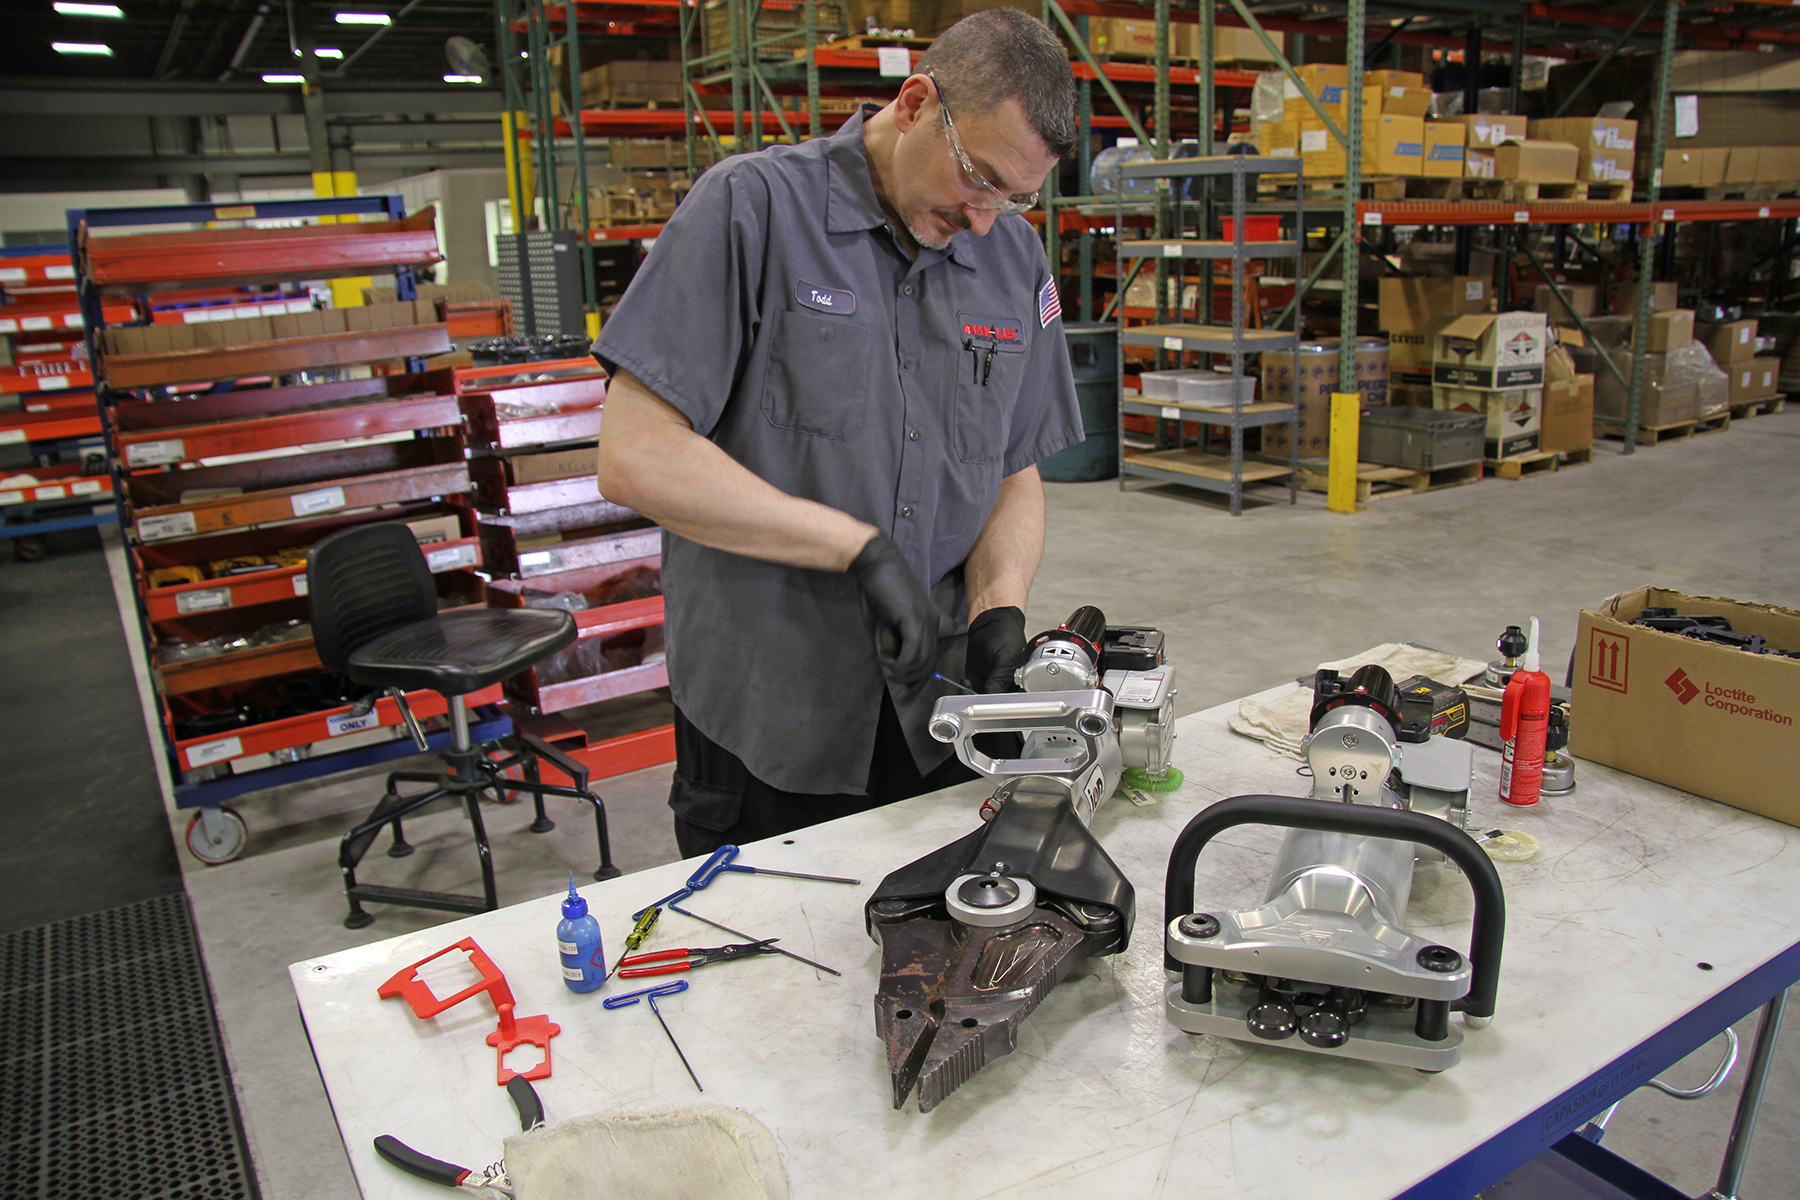 AMKUS employee working on a rescue tool